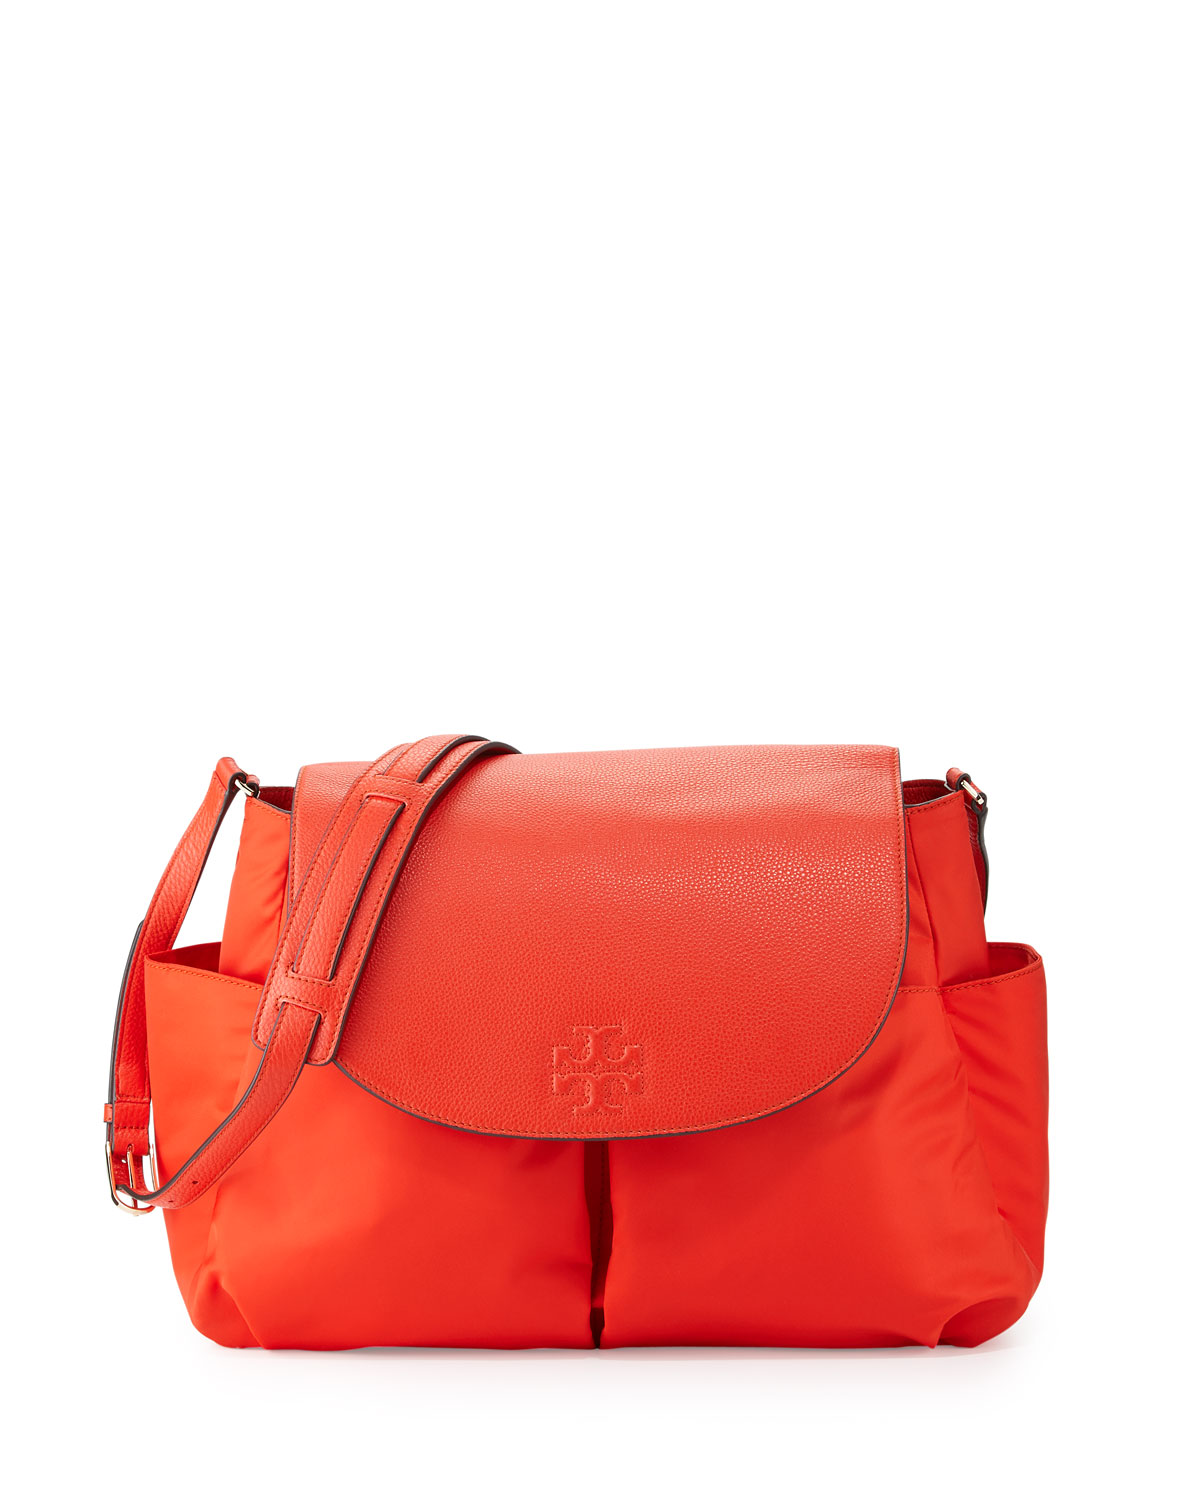 Tory Burch Thea Nylon Messenger Baby Bag, Red (Poppy Red)